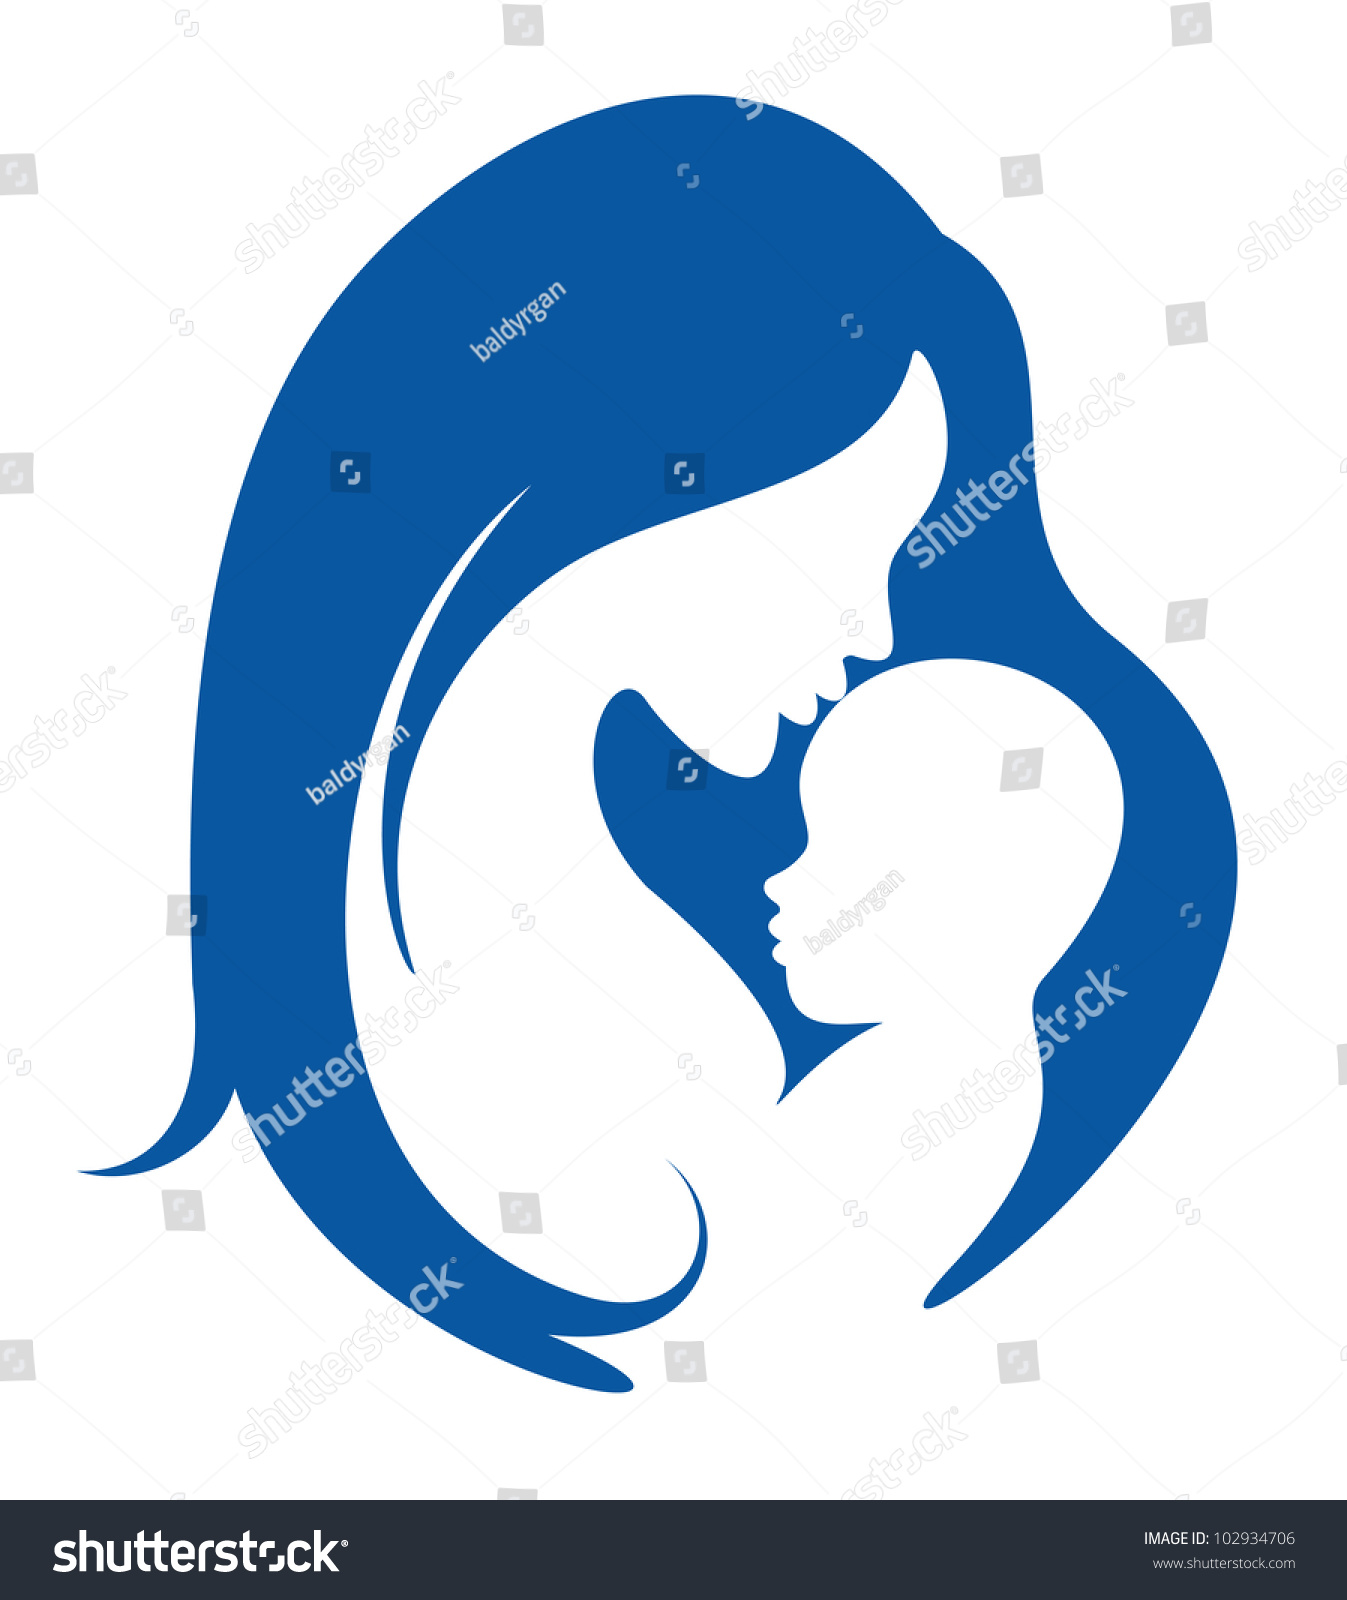 Love The Mother Child Silhouette: Mother Baby Vector Silhouette Stock Vector 102934706